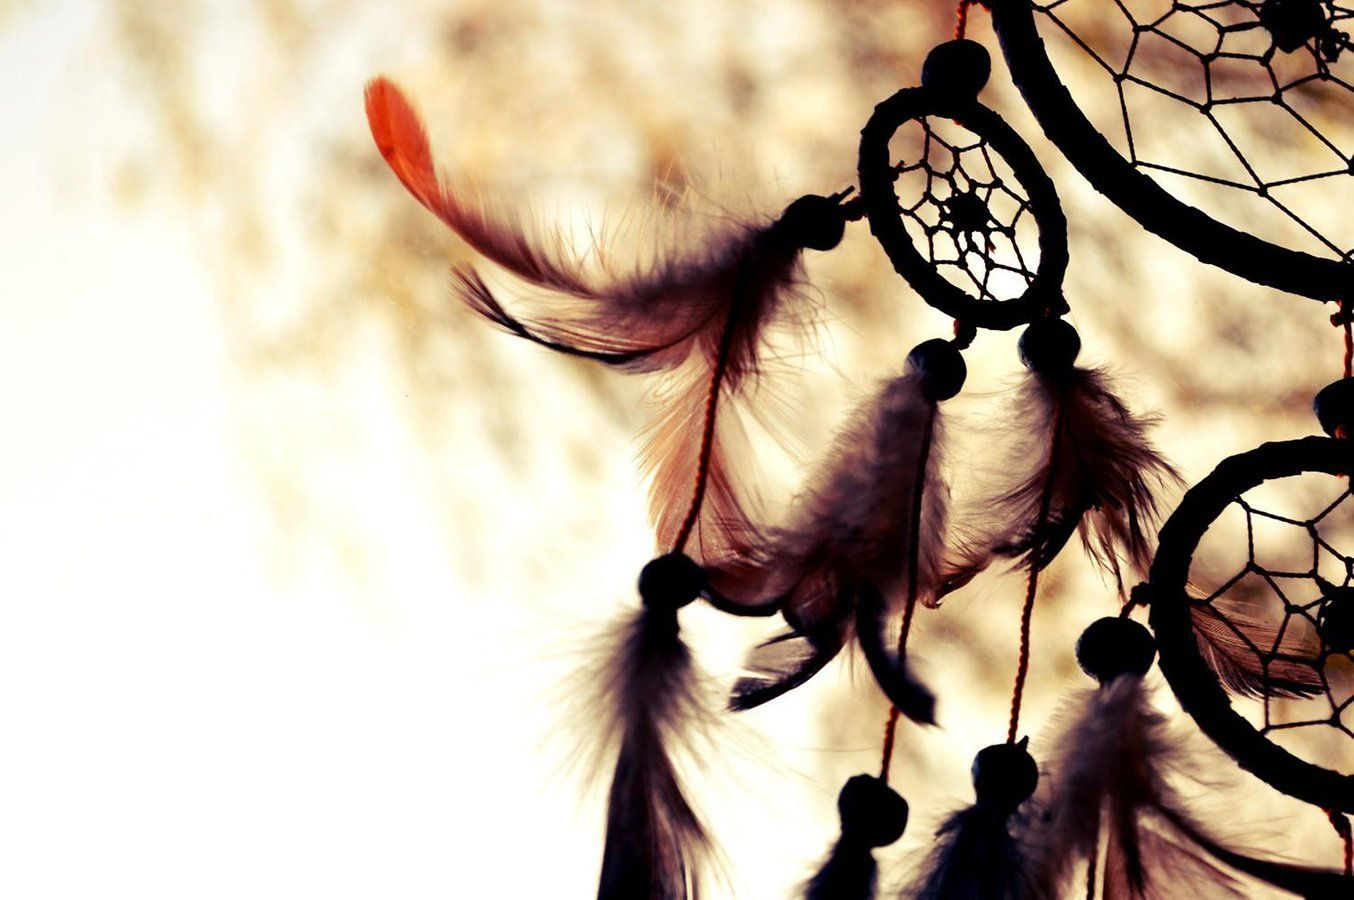 Top Dreamcatcher HD Wallpapers – Top Pics for PC & Mac, Laptop ...